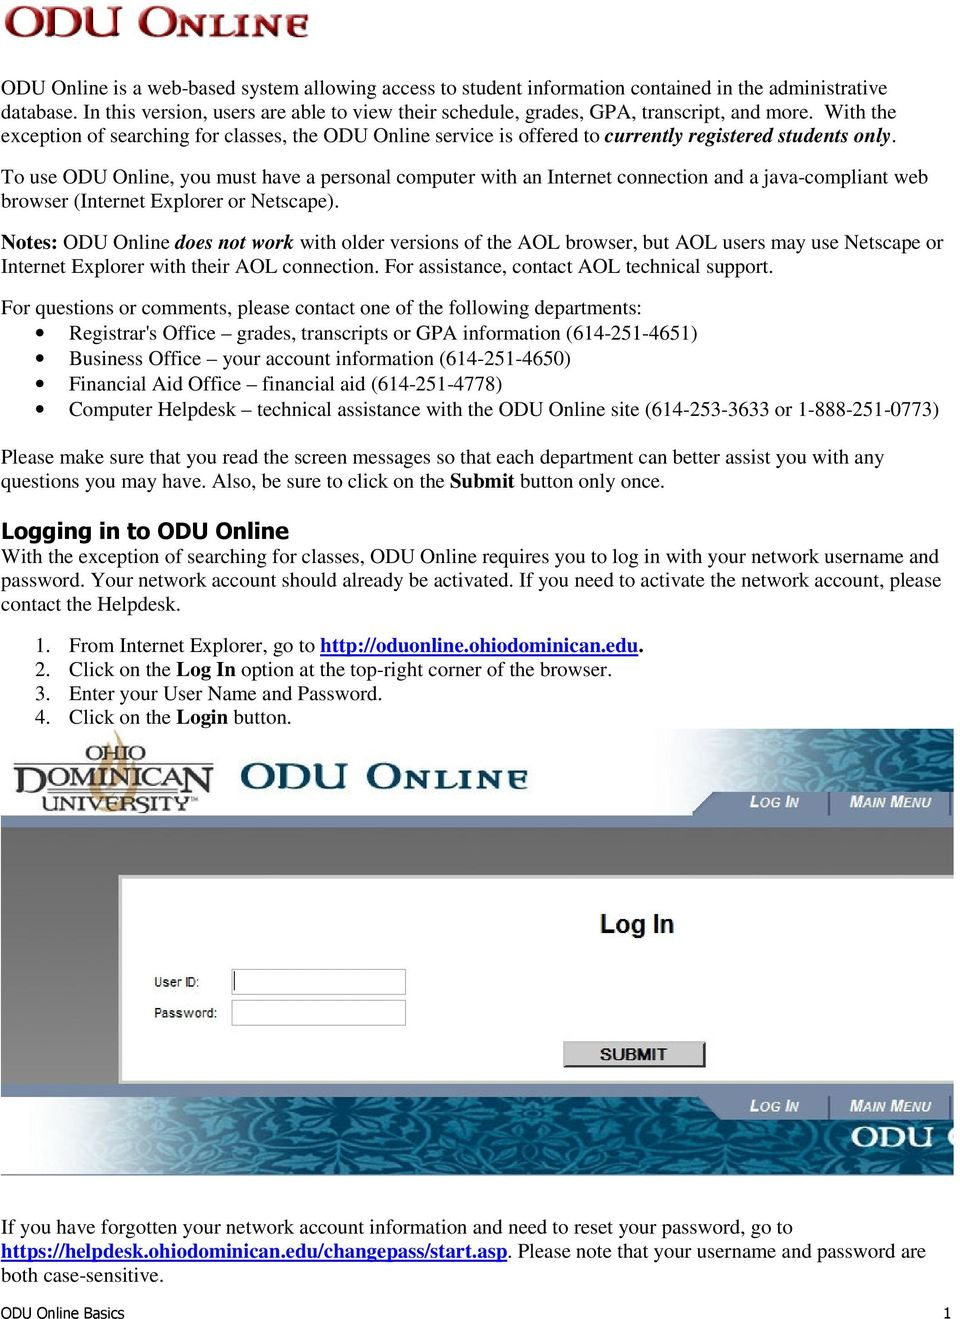 With the exception of searching for classes, the ODU Online service is offered to currently registered students only.